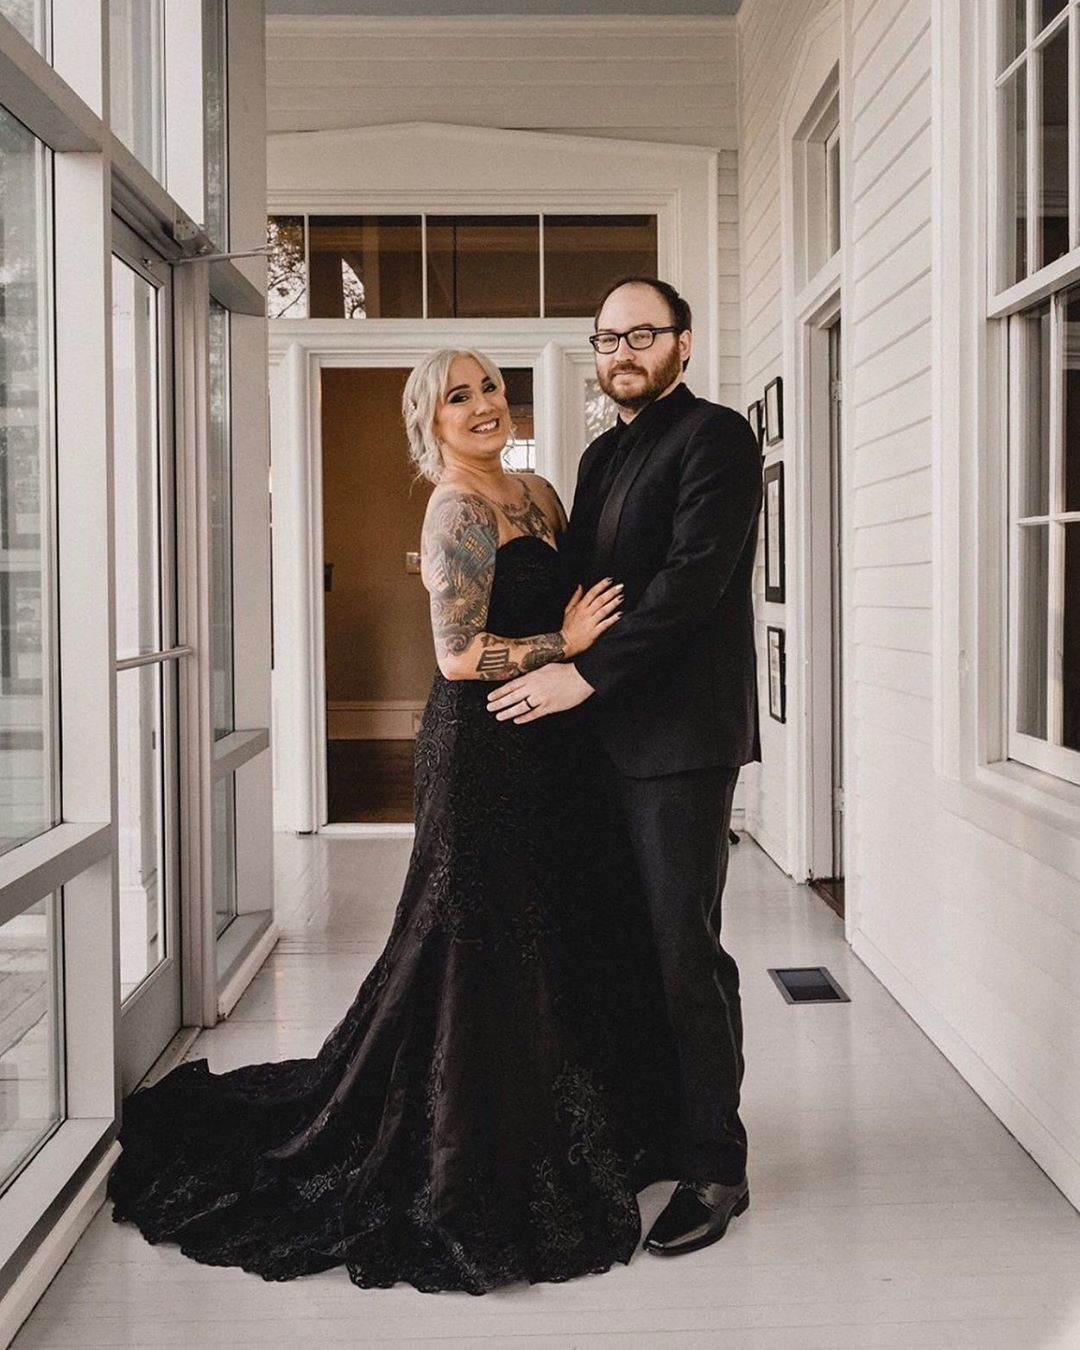 Your wedding style should be as unique as you. ✨ We are loving this all black look of our gorgeous bride Noelle! 😍 Would you